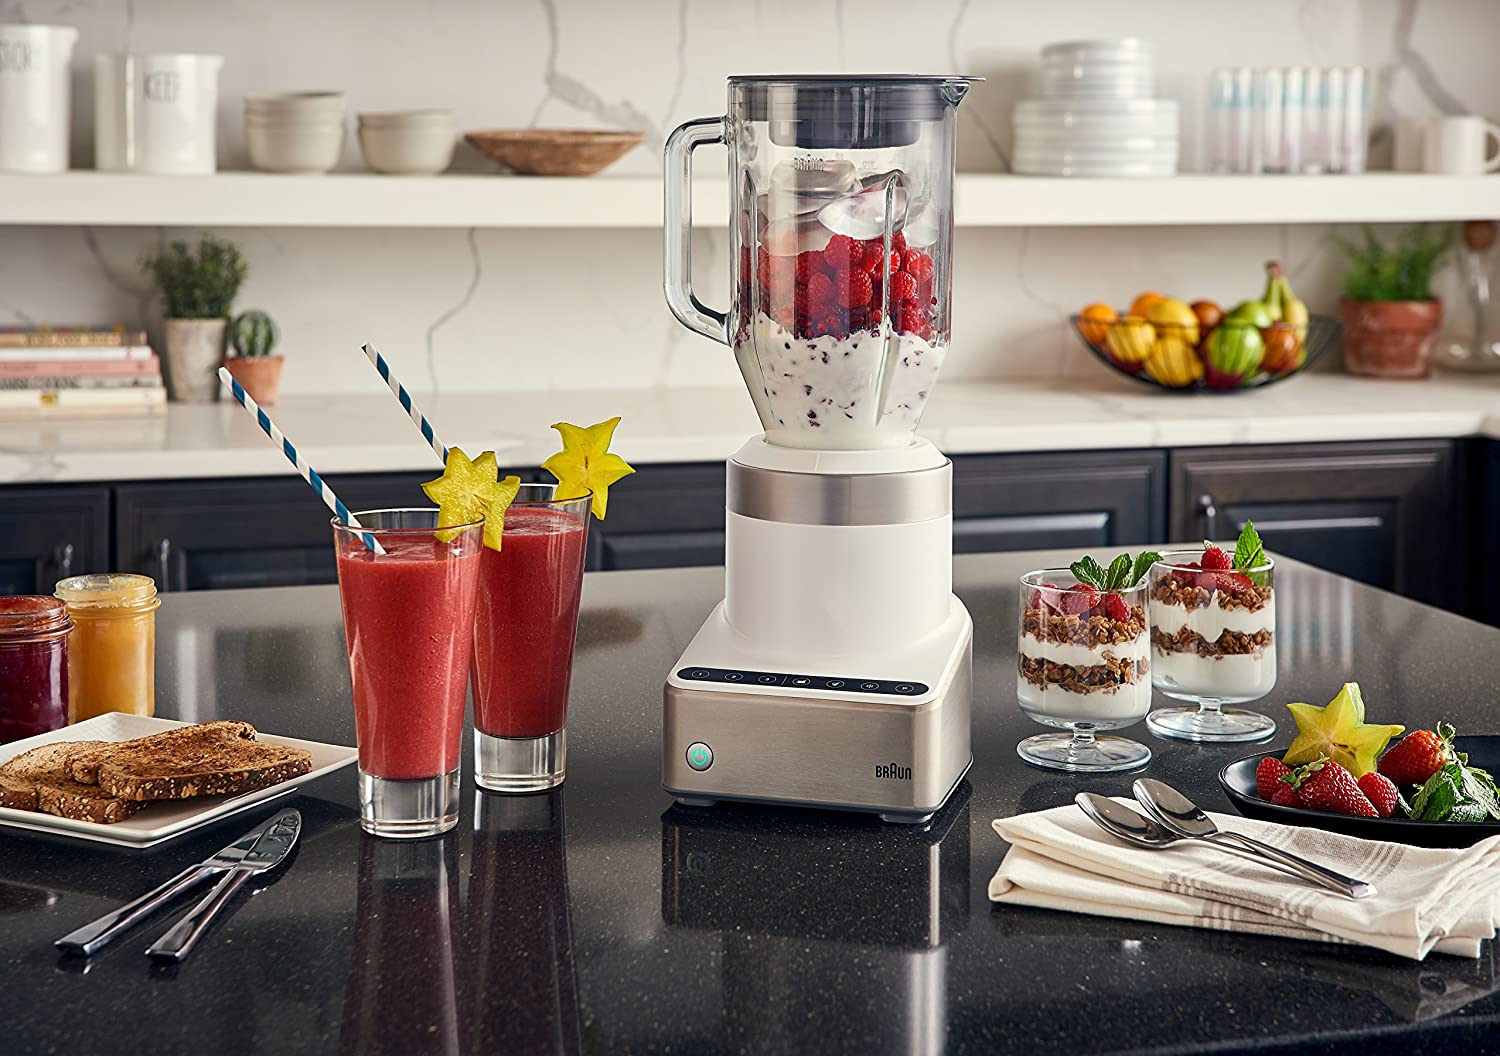 Best blender with glass jar - Braun JB7350 WHS Glass Jar Blender